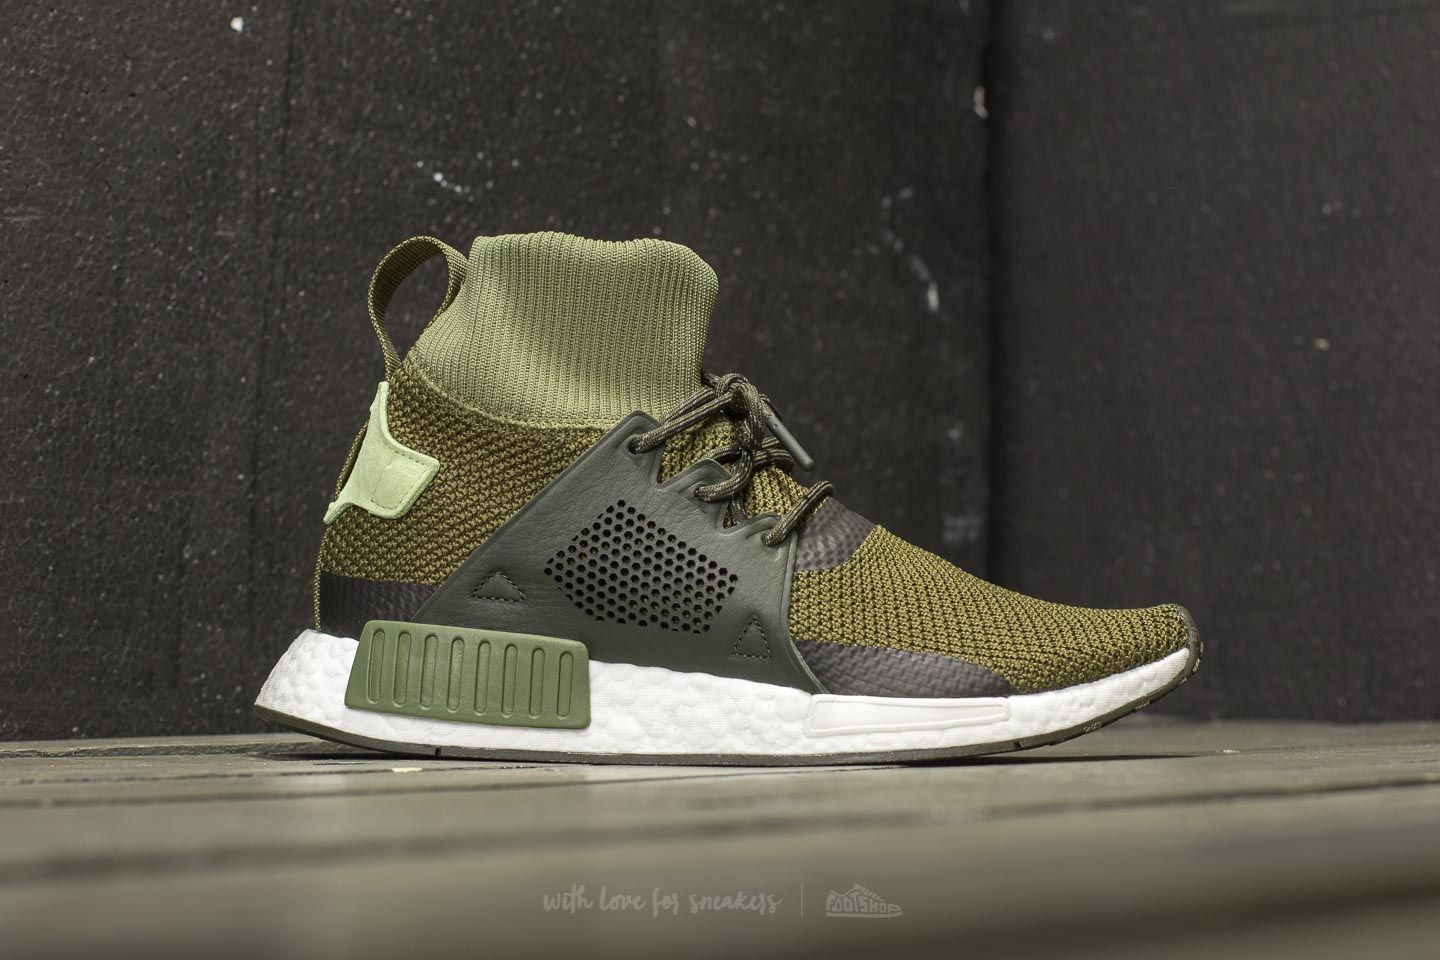 detailed look 5d8e8 11e82 adidas NMD_XR1 Winter Olive Cargo/ Night Cargo/ Umber at a ...